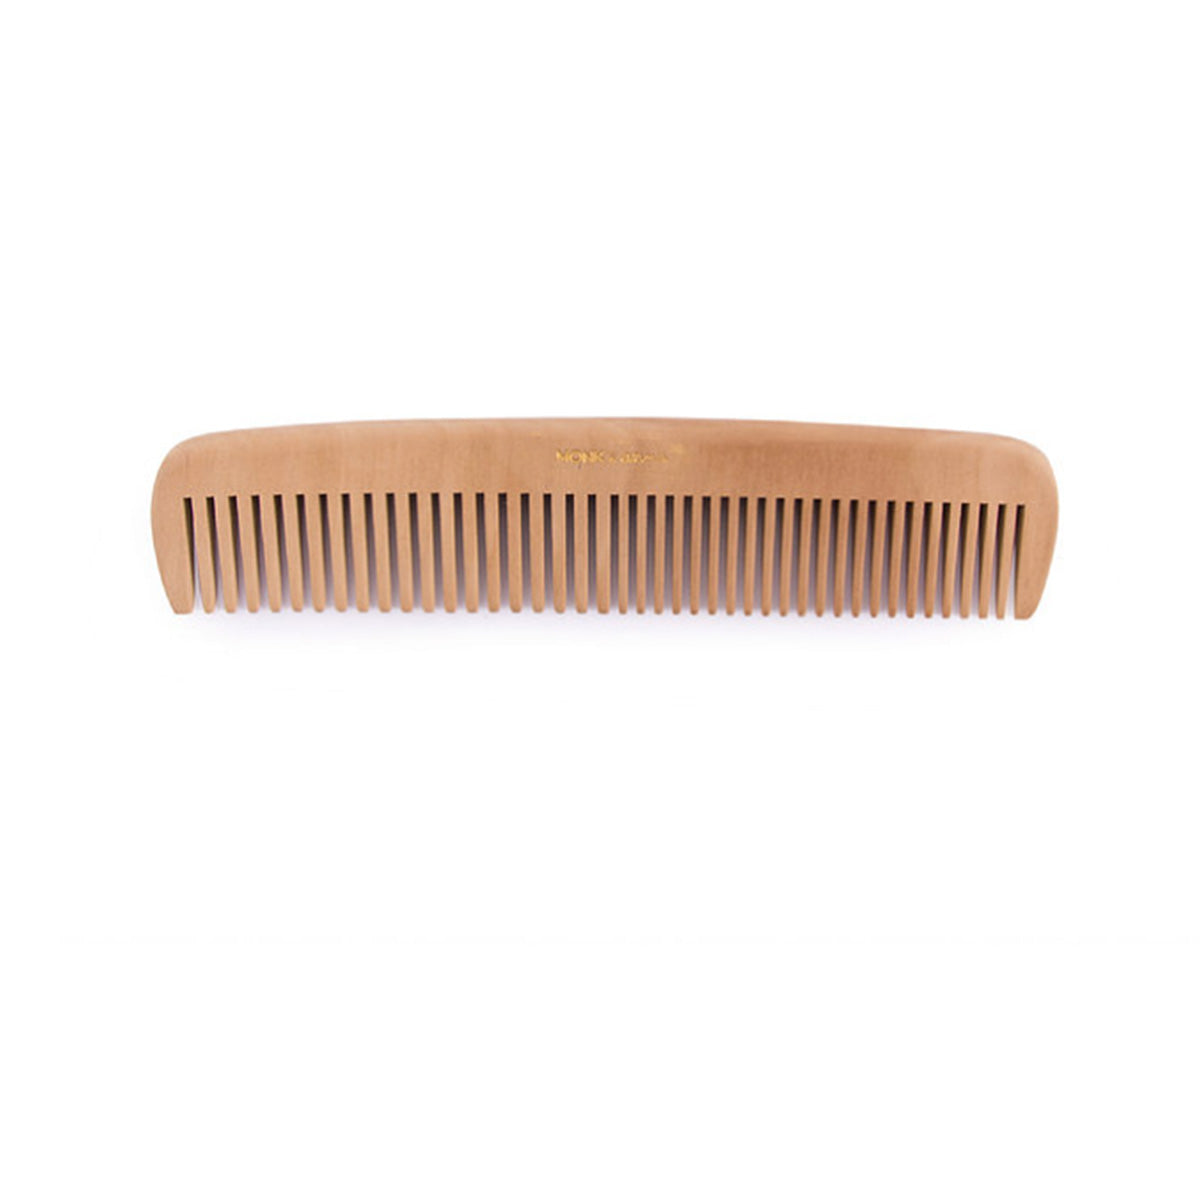 Natural Wooden Hair Comb With Pouch - Monk & Anna - Natural Beauty - Hair Comb - Sustainable Design - Natural Bath - Organic Baby